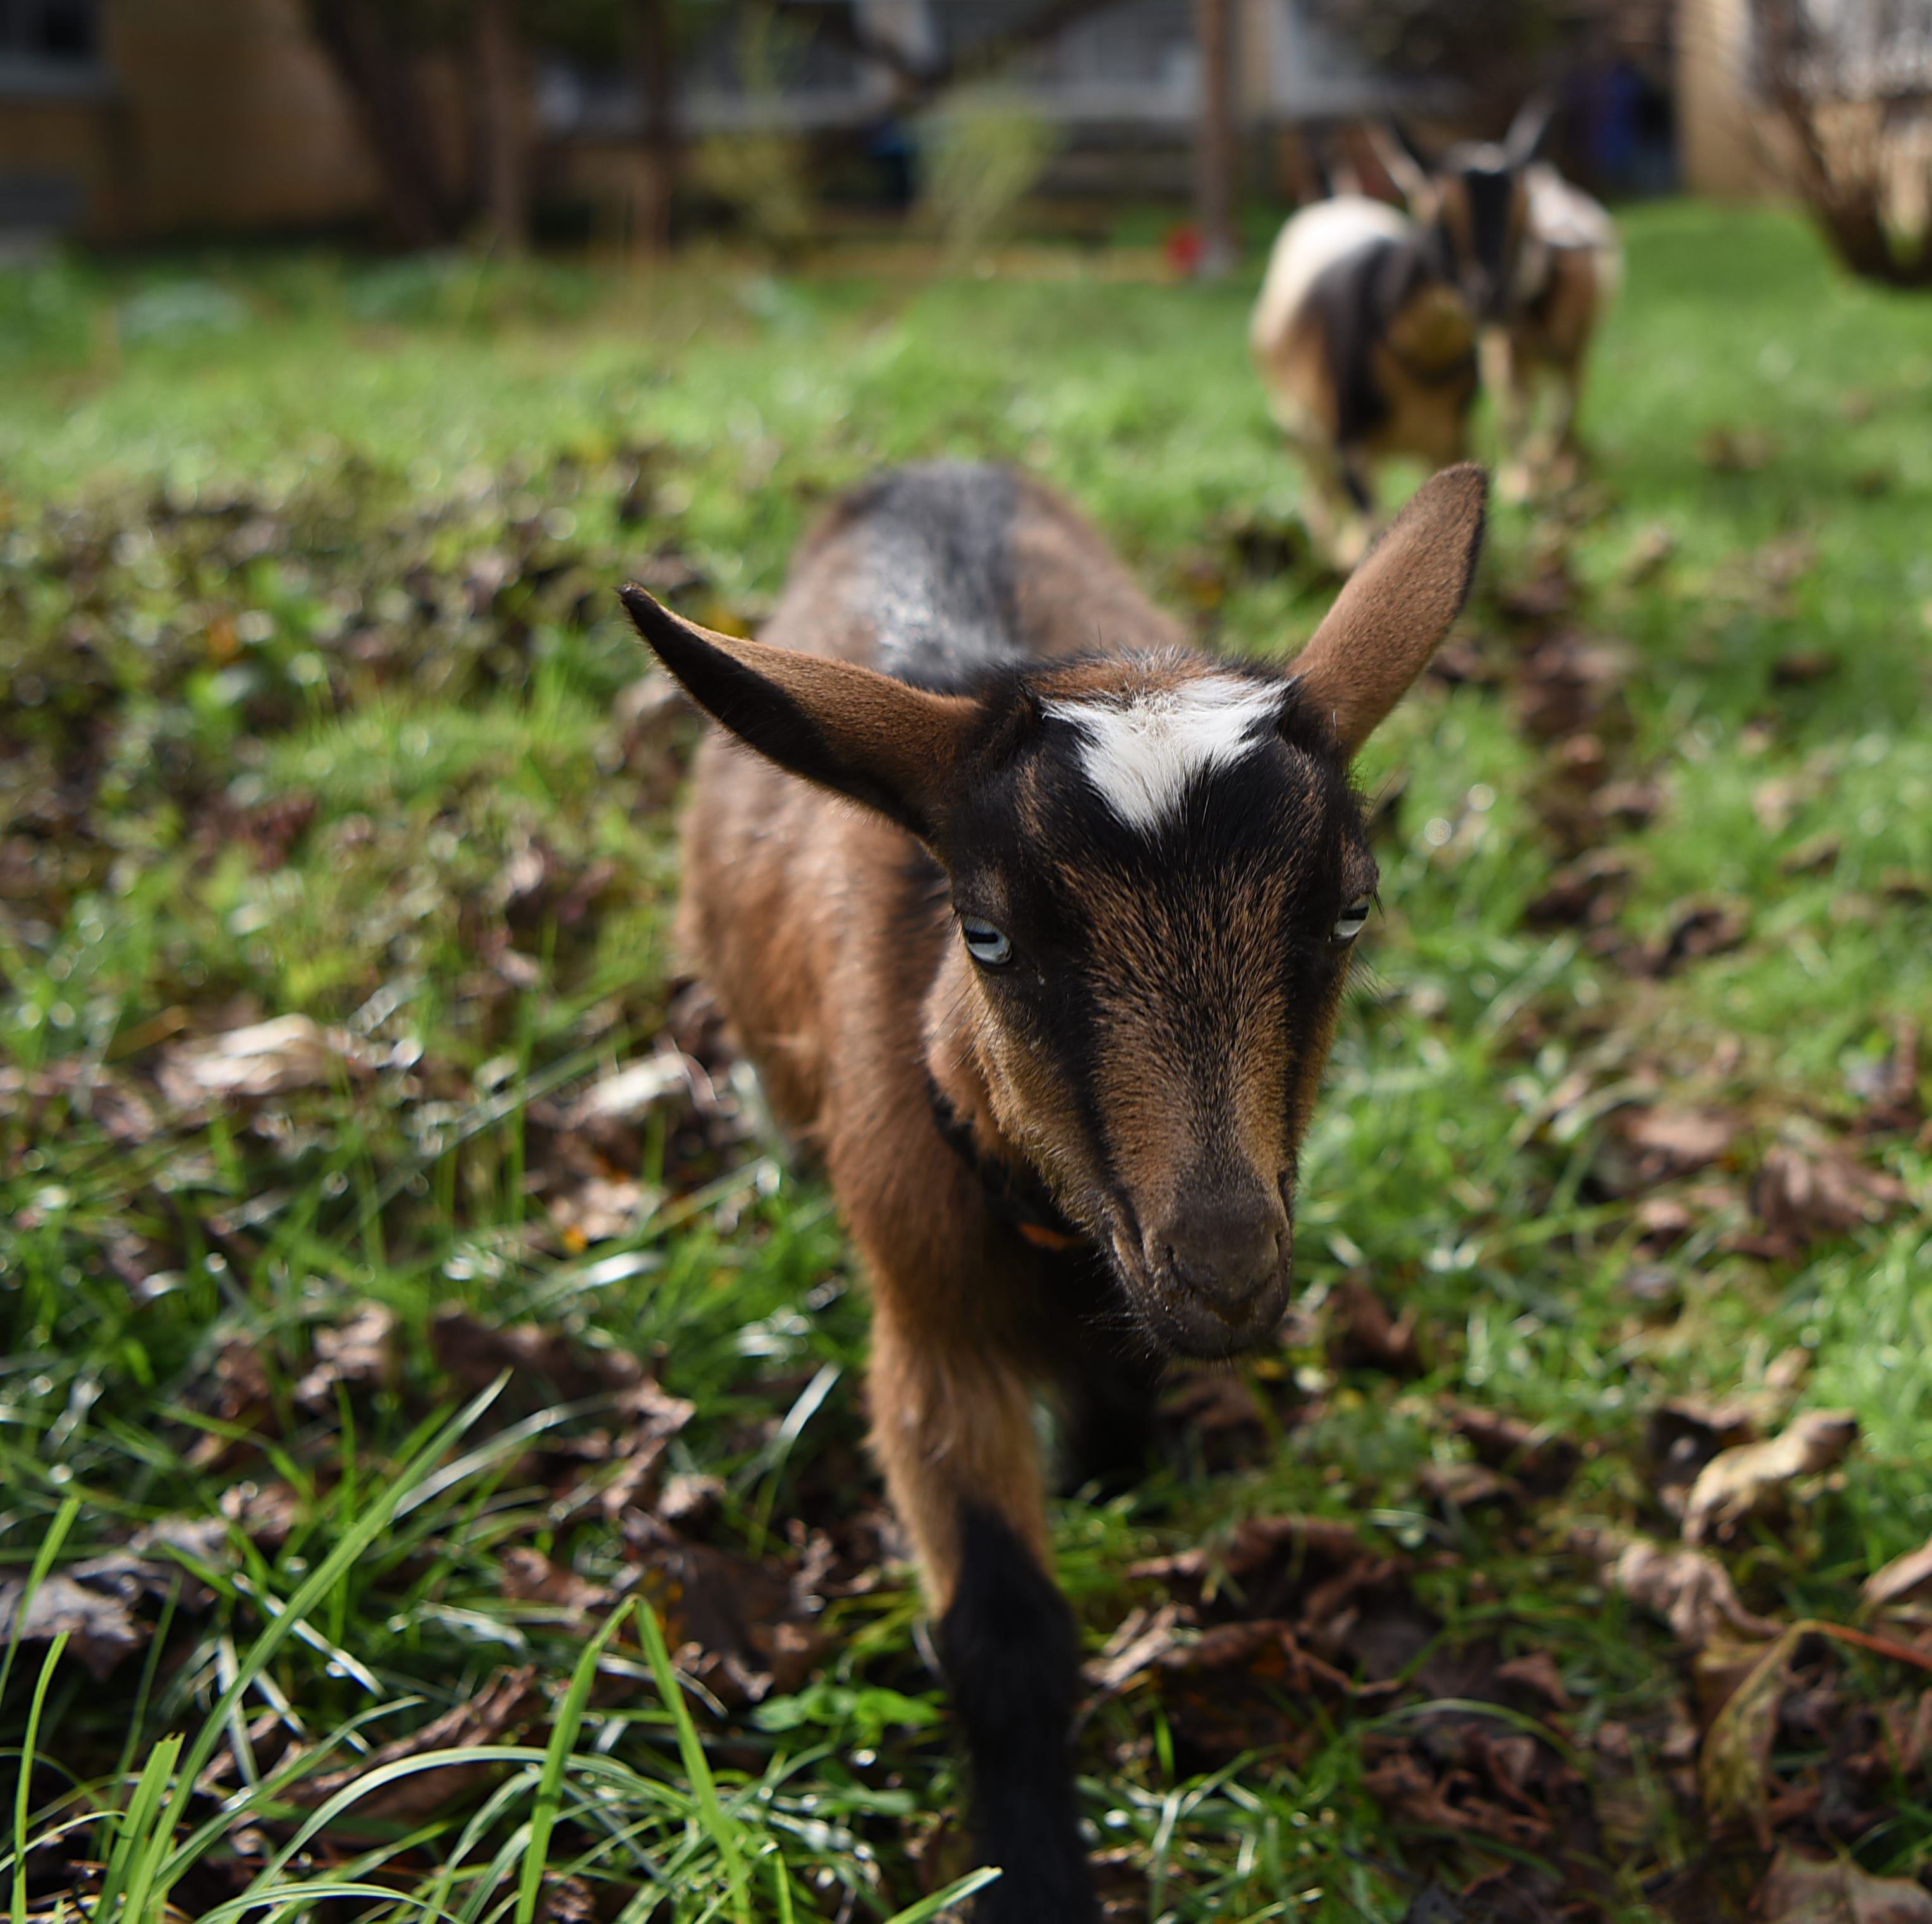 Three tiny (and adorable) goats solved this New Jersey school's poison ivy problem